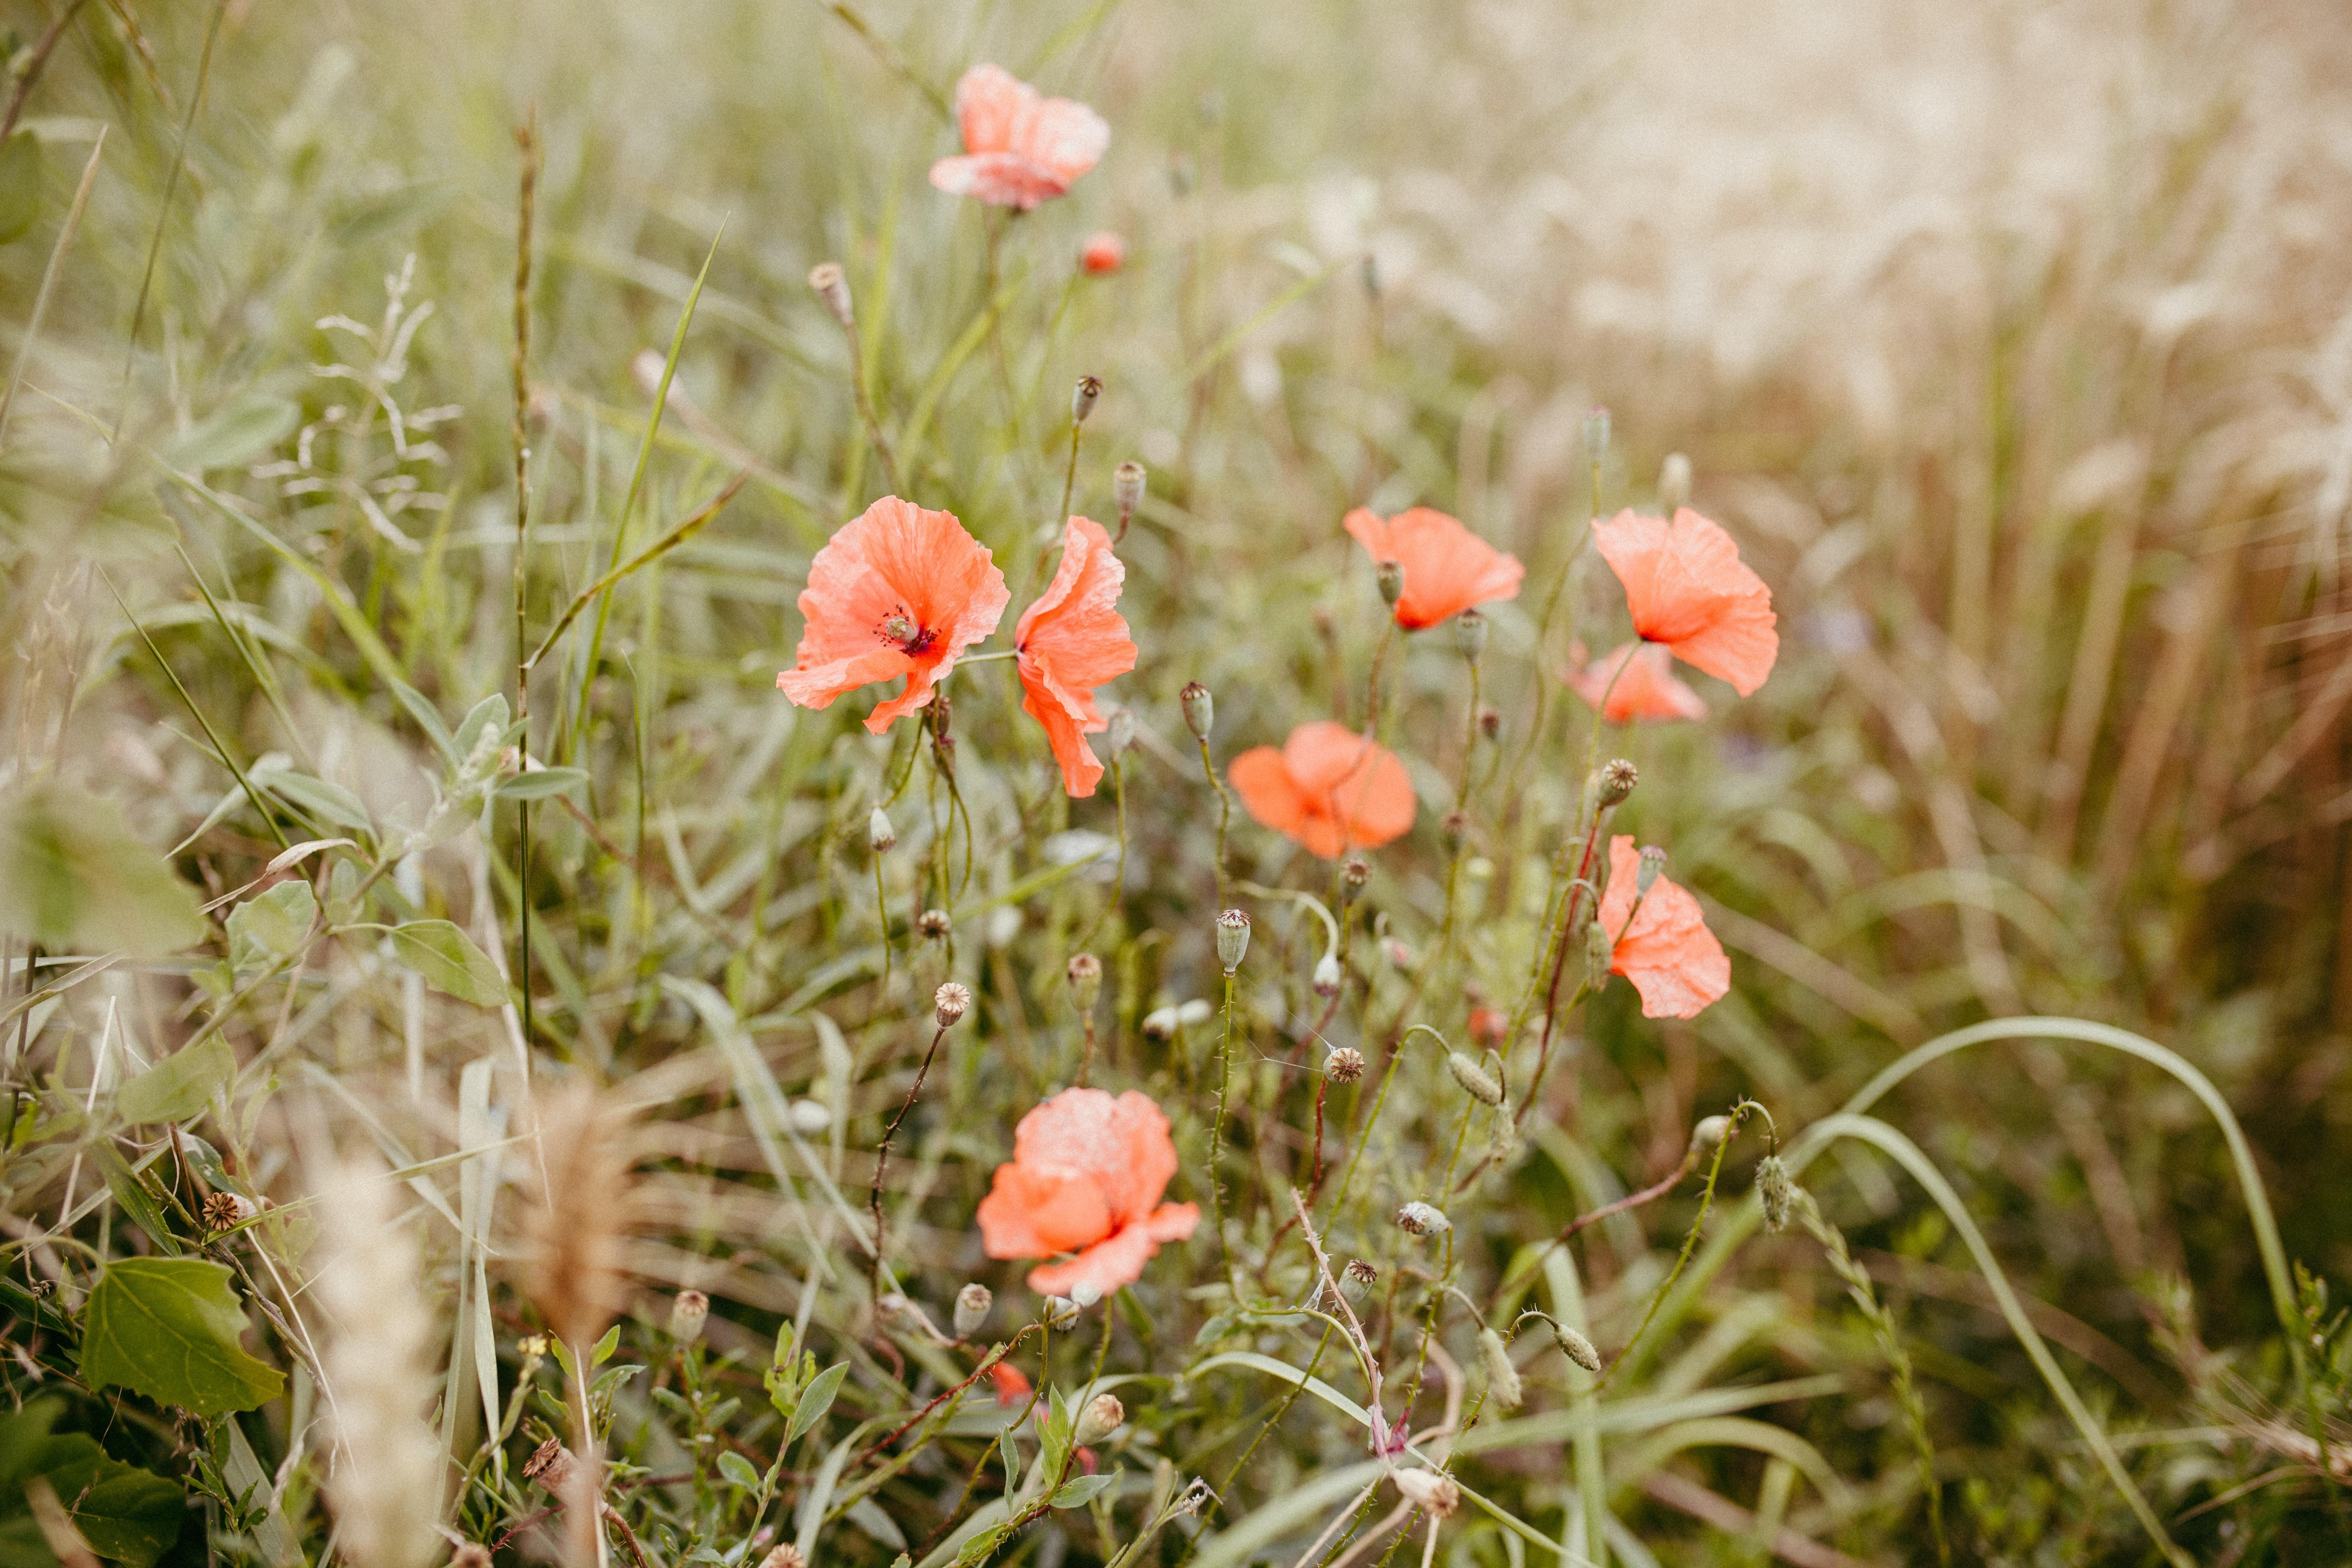 closeup photo of red flowers